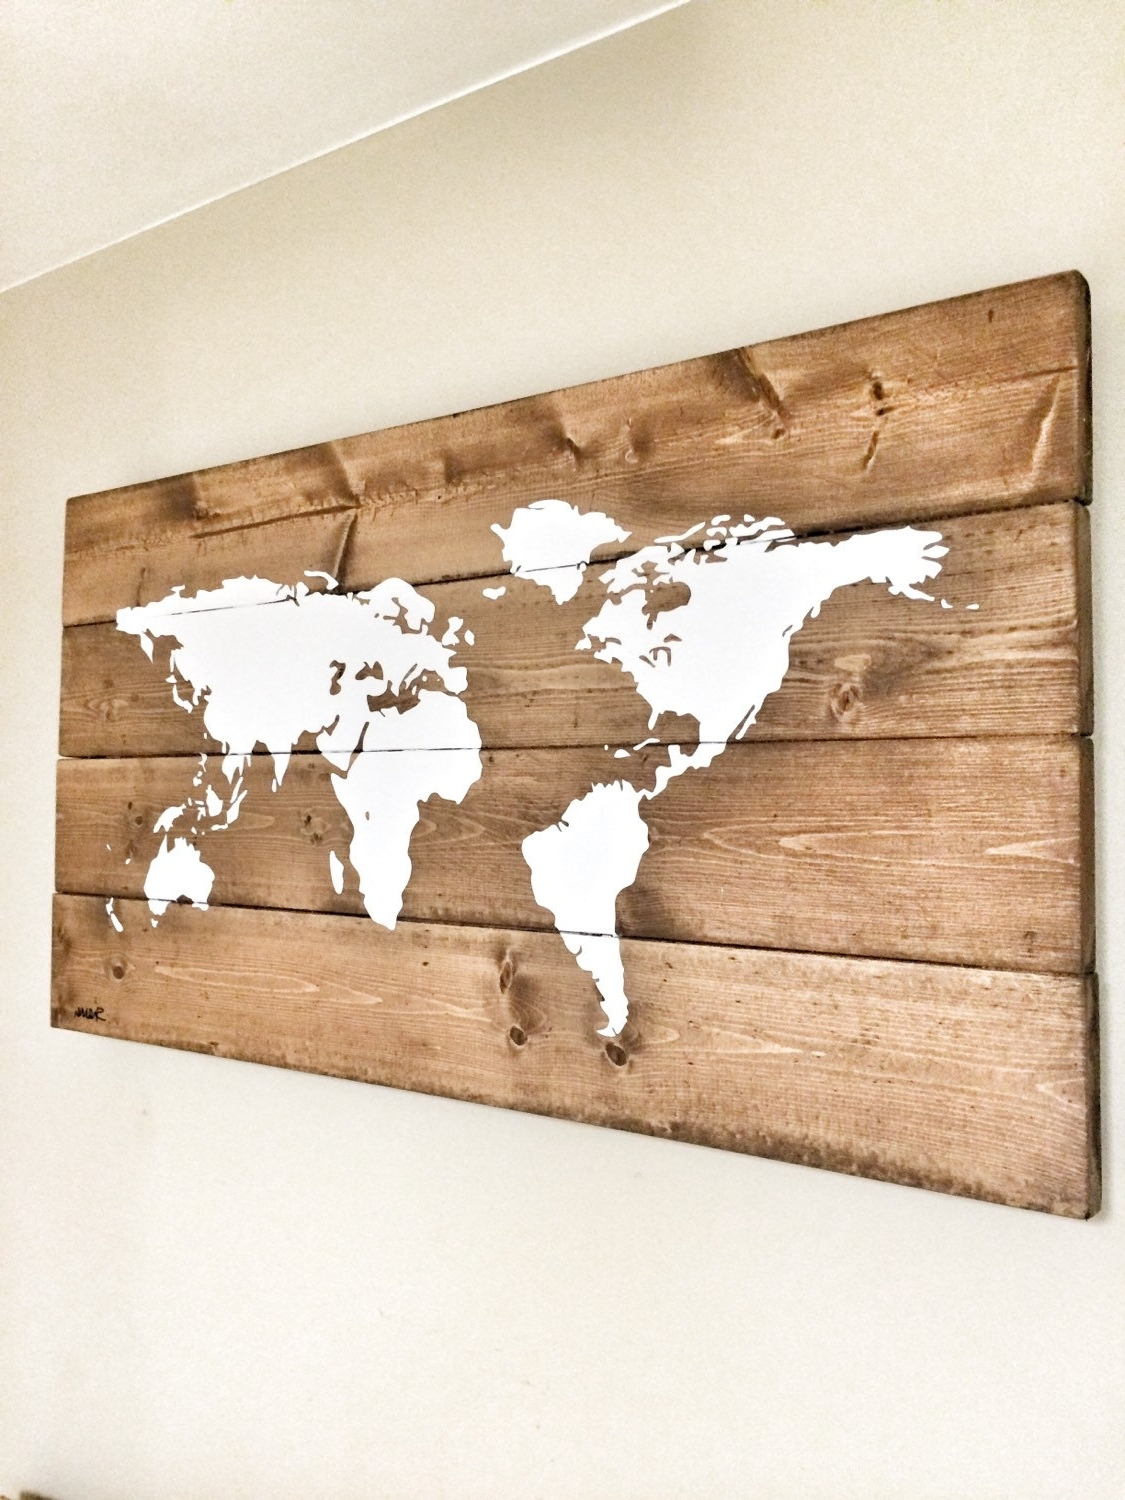 Best And Newest World Map Wood Wall Art Pertaining To Wall Art Designs: Wooden World Map Wall Art Wooden Wall Art Pallet (View 2 of 15)